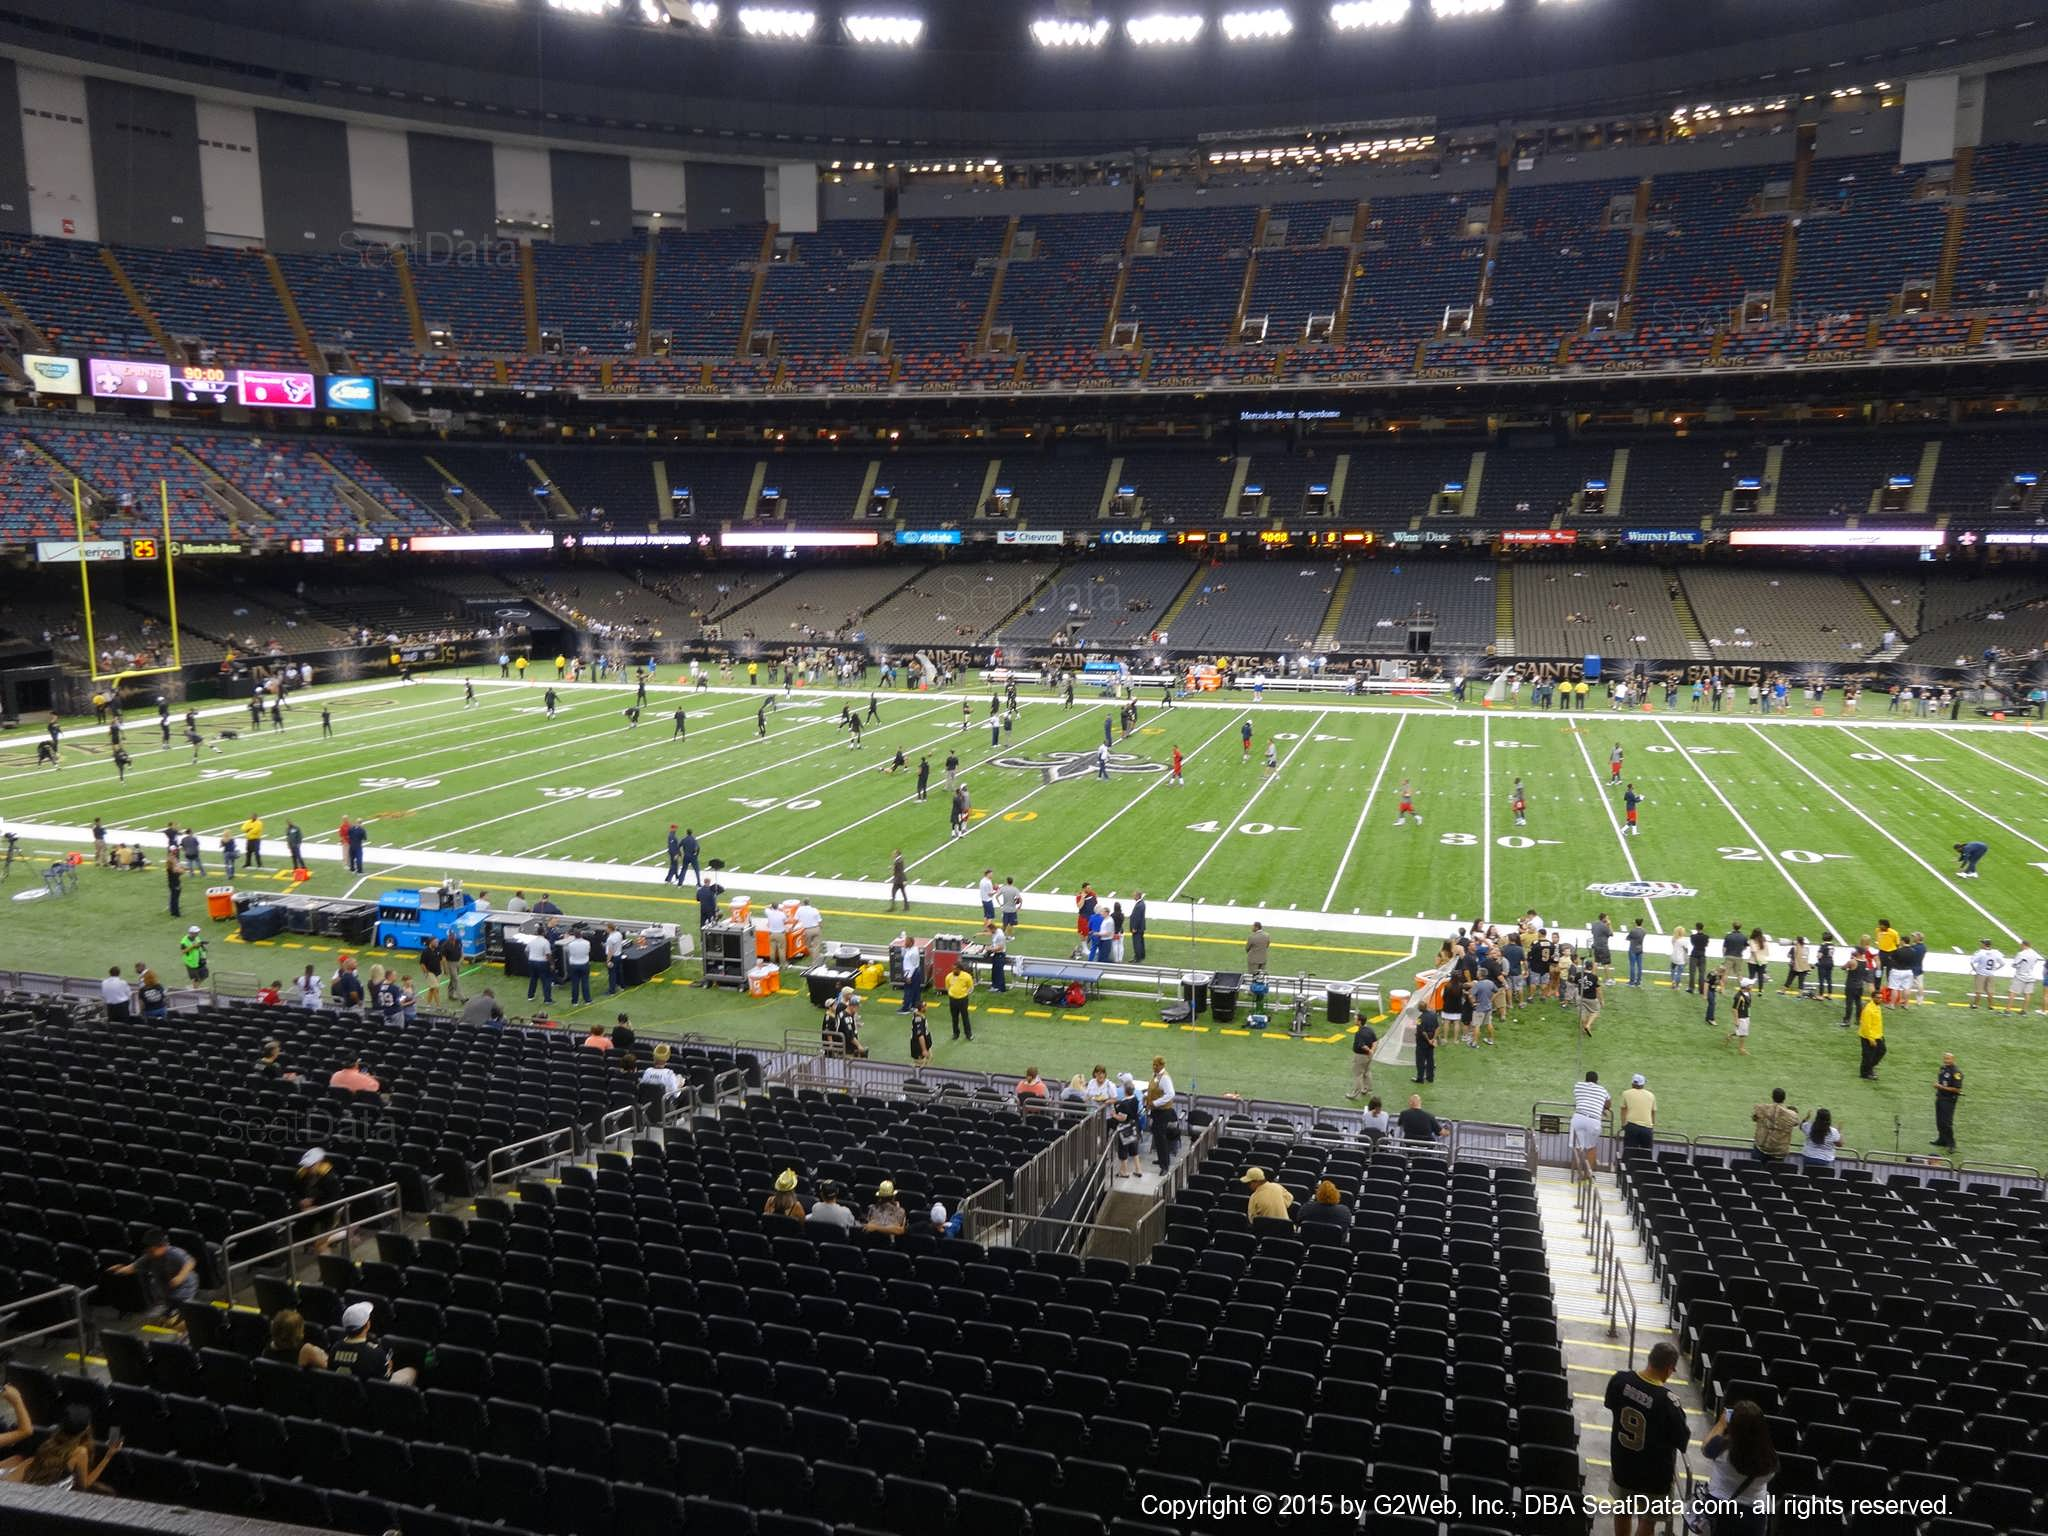 Seat view from section 219 at the Mercedes-Benz Superdome, home of the New Orleans Saints